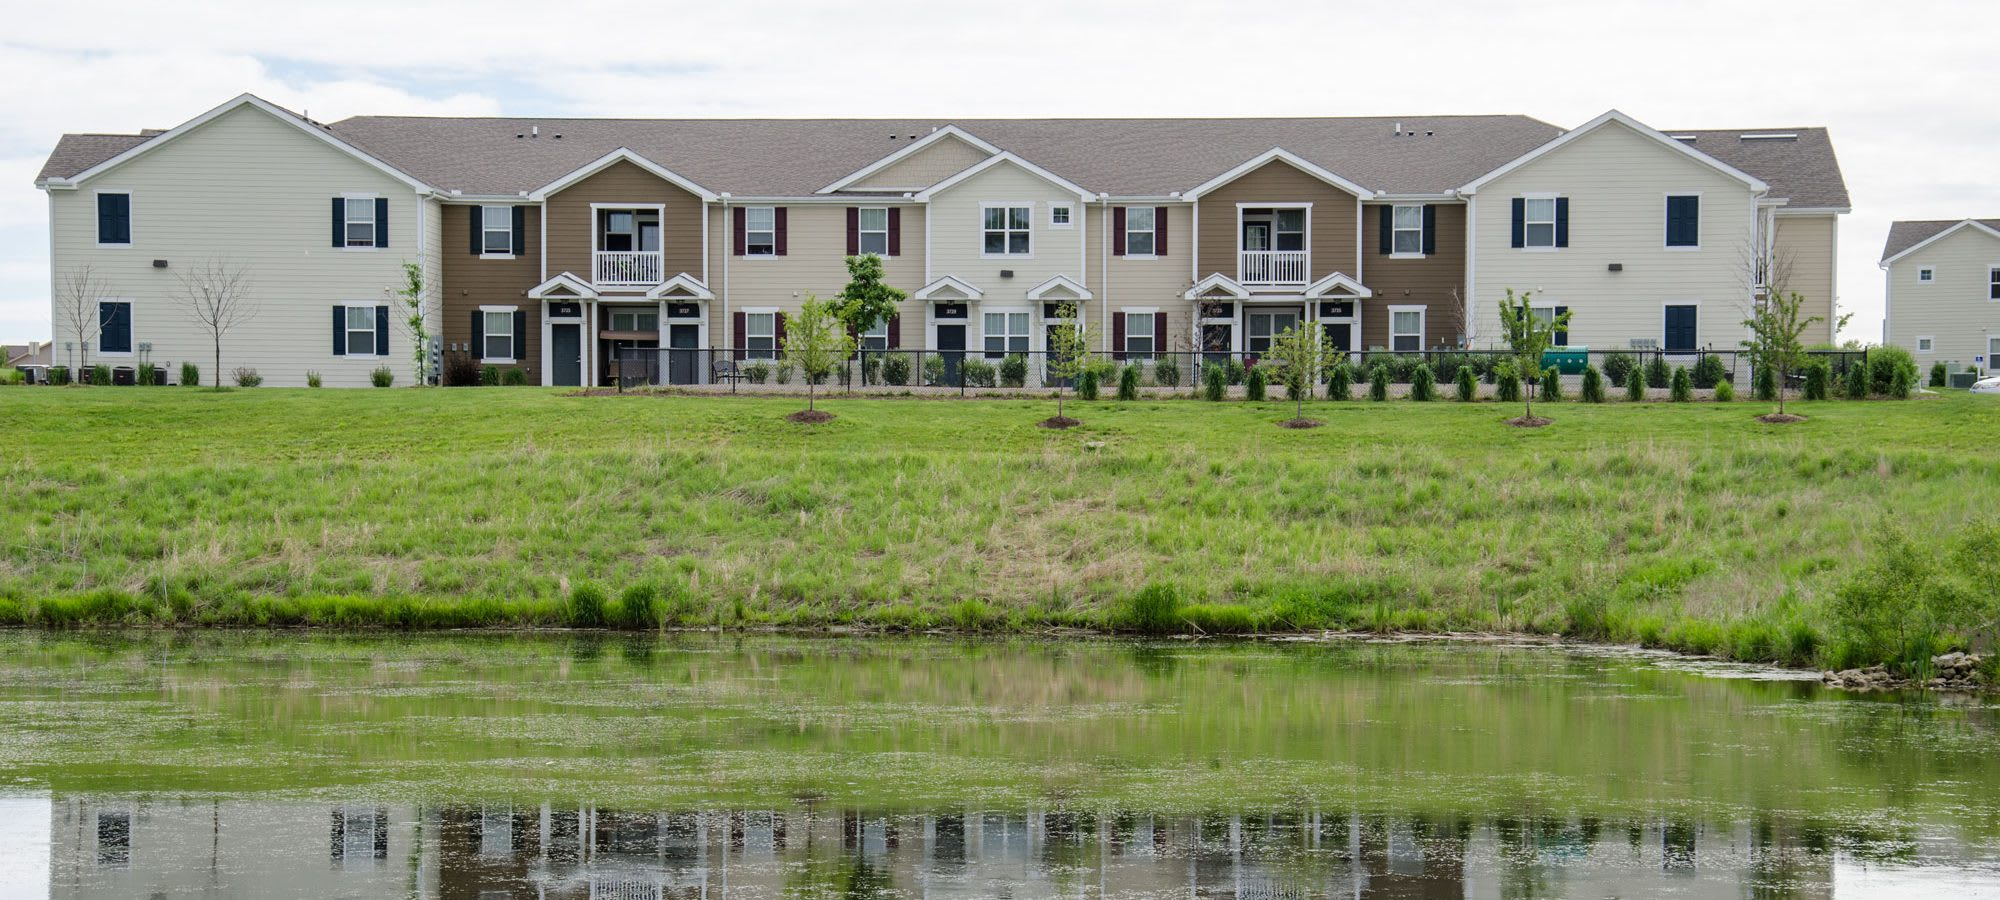 Apartments in Bettendorf, IA